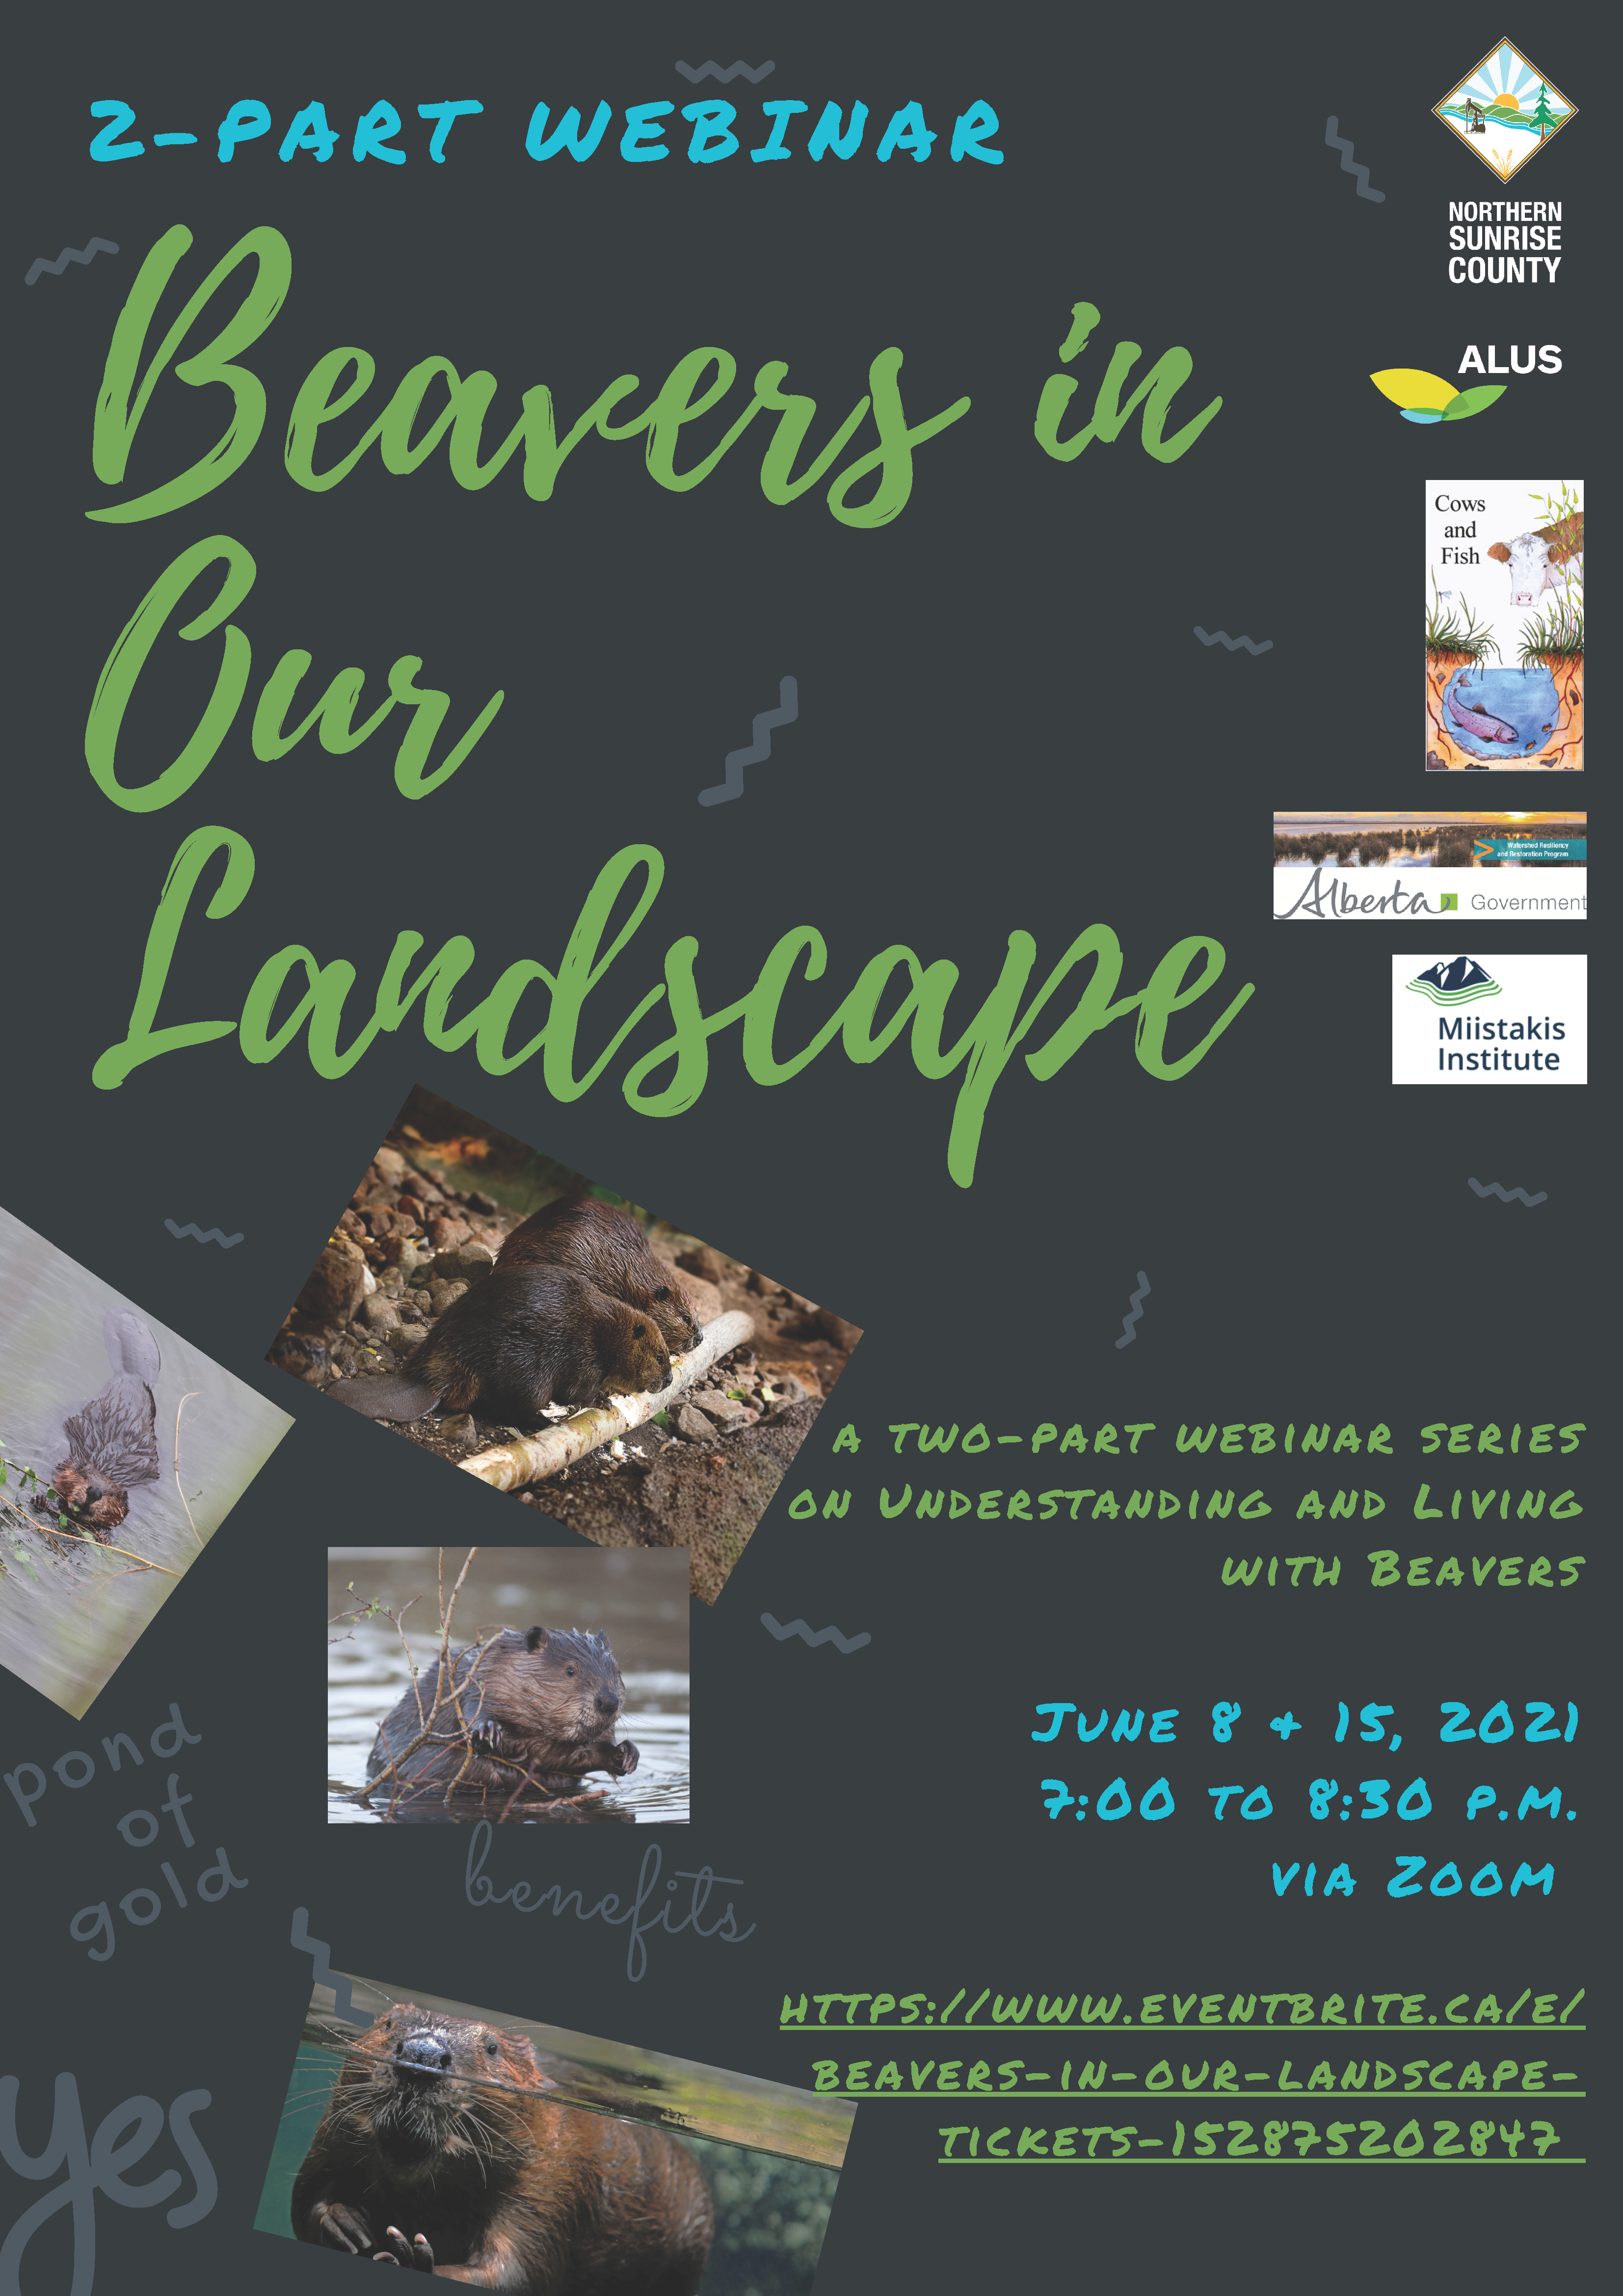 Beavers in Our Landscape Webinar - Understanding and Living with Beaver